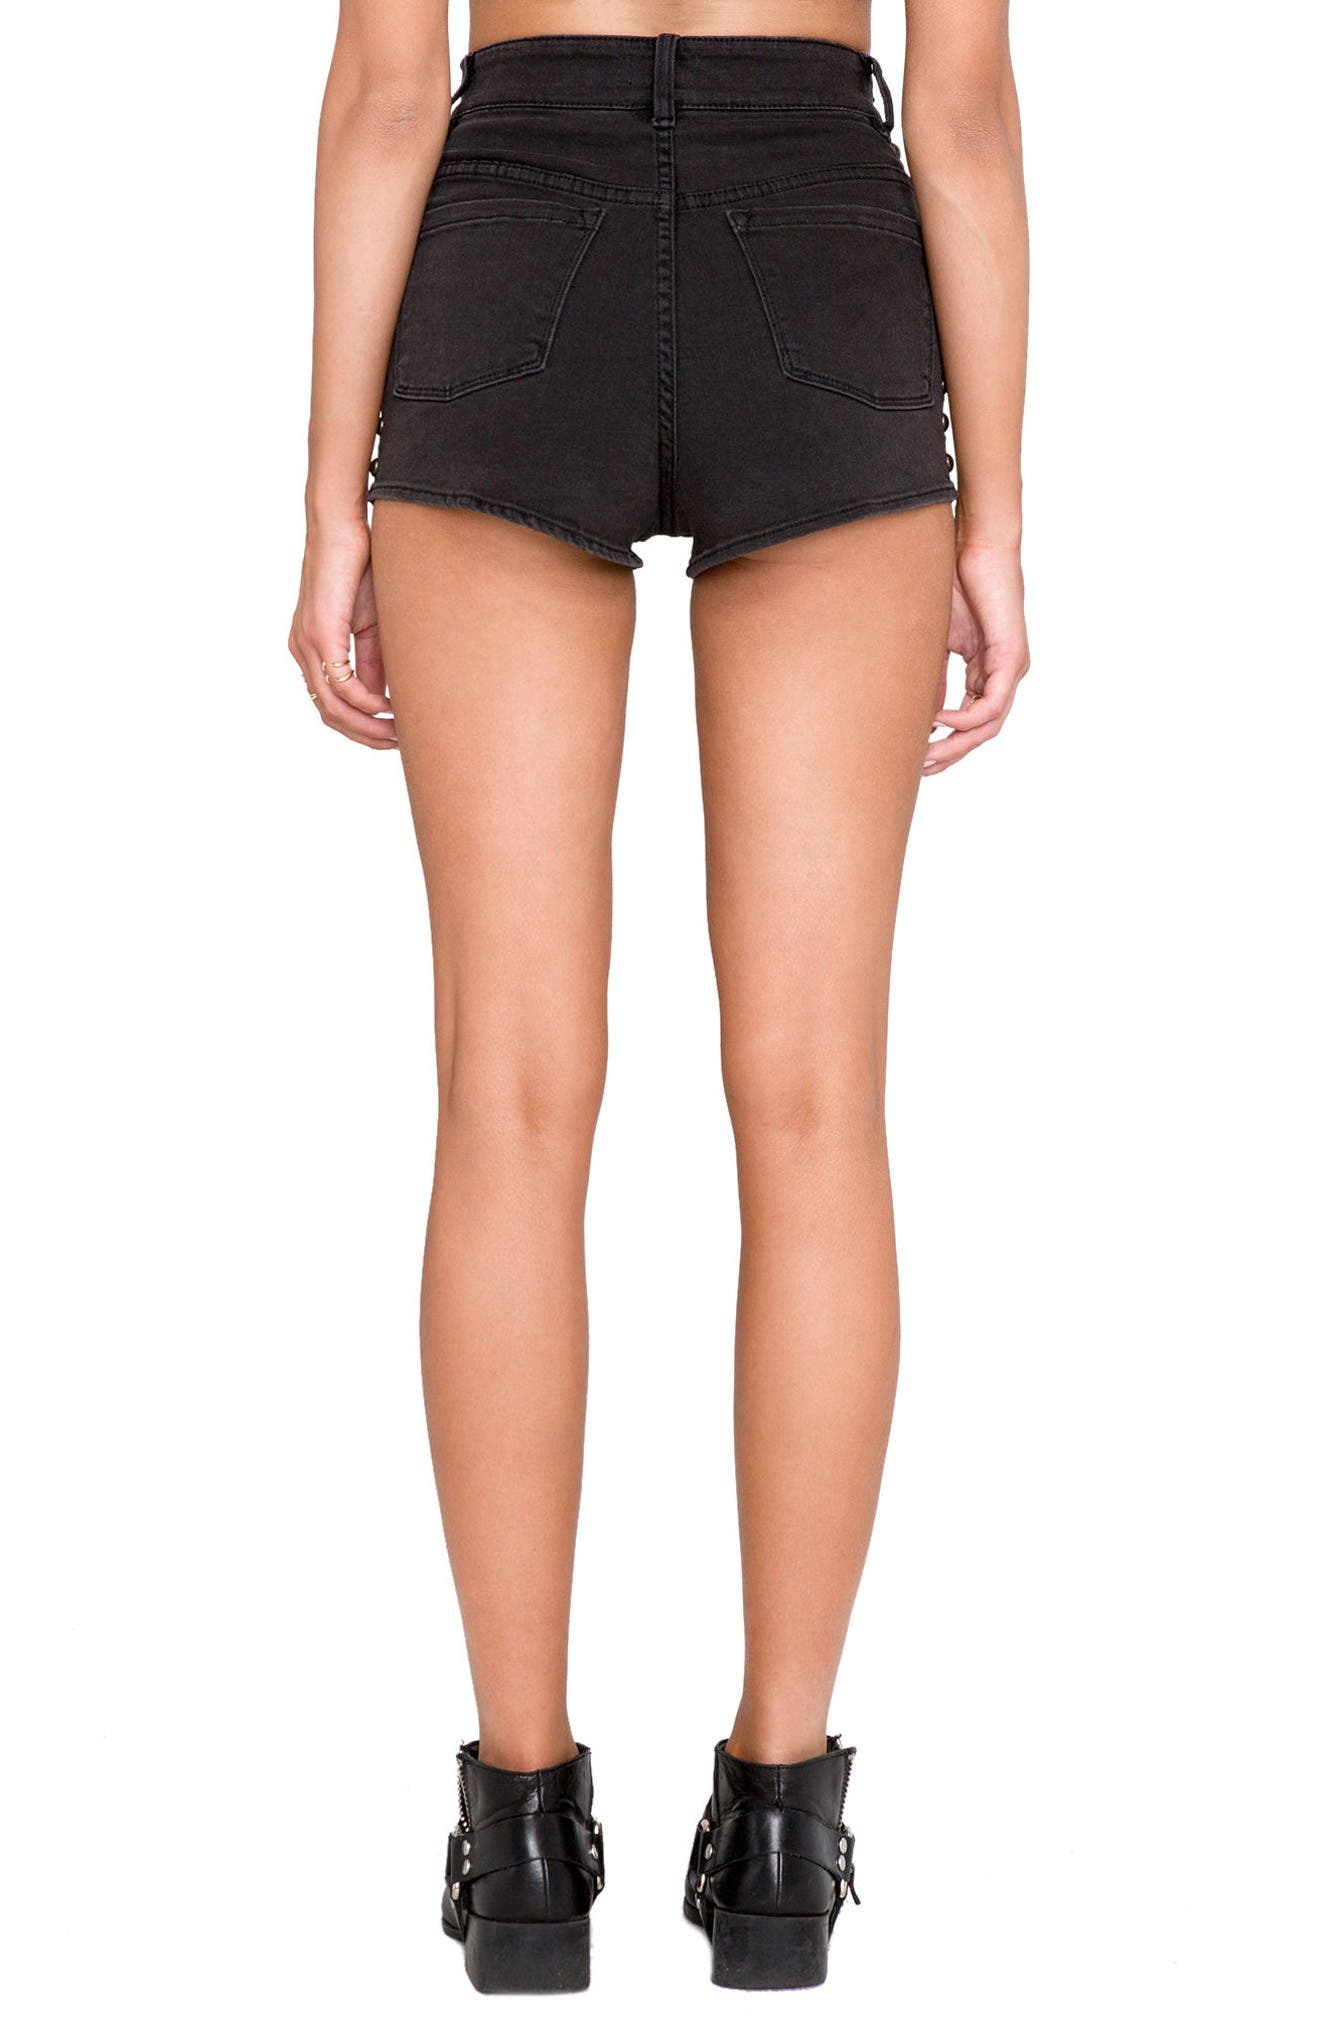 Alternate Image 3  - Amuse Society Rhea Studded High Waist Shorts